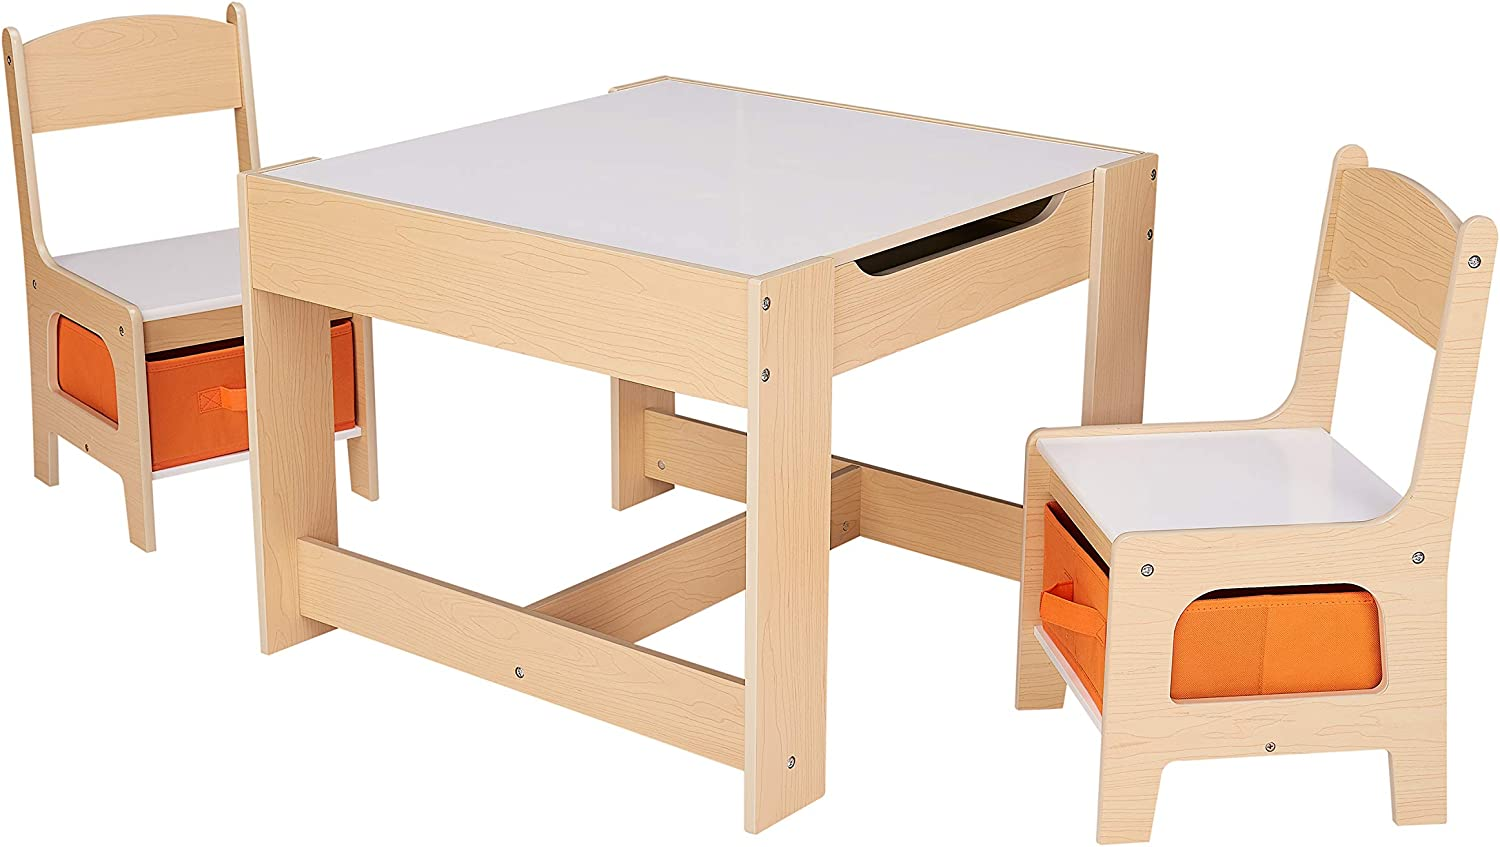 Brown by Michael Trunnell Kids Wooden Storage Table and Chairs Set 3 Piece